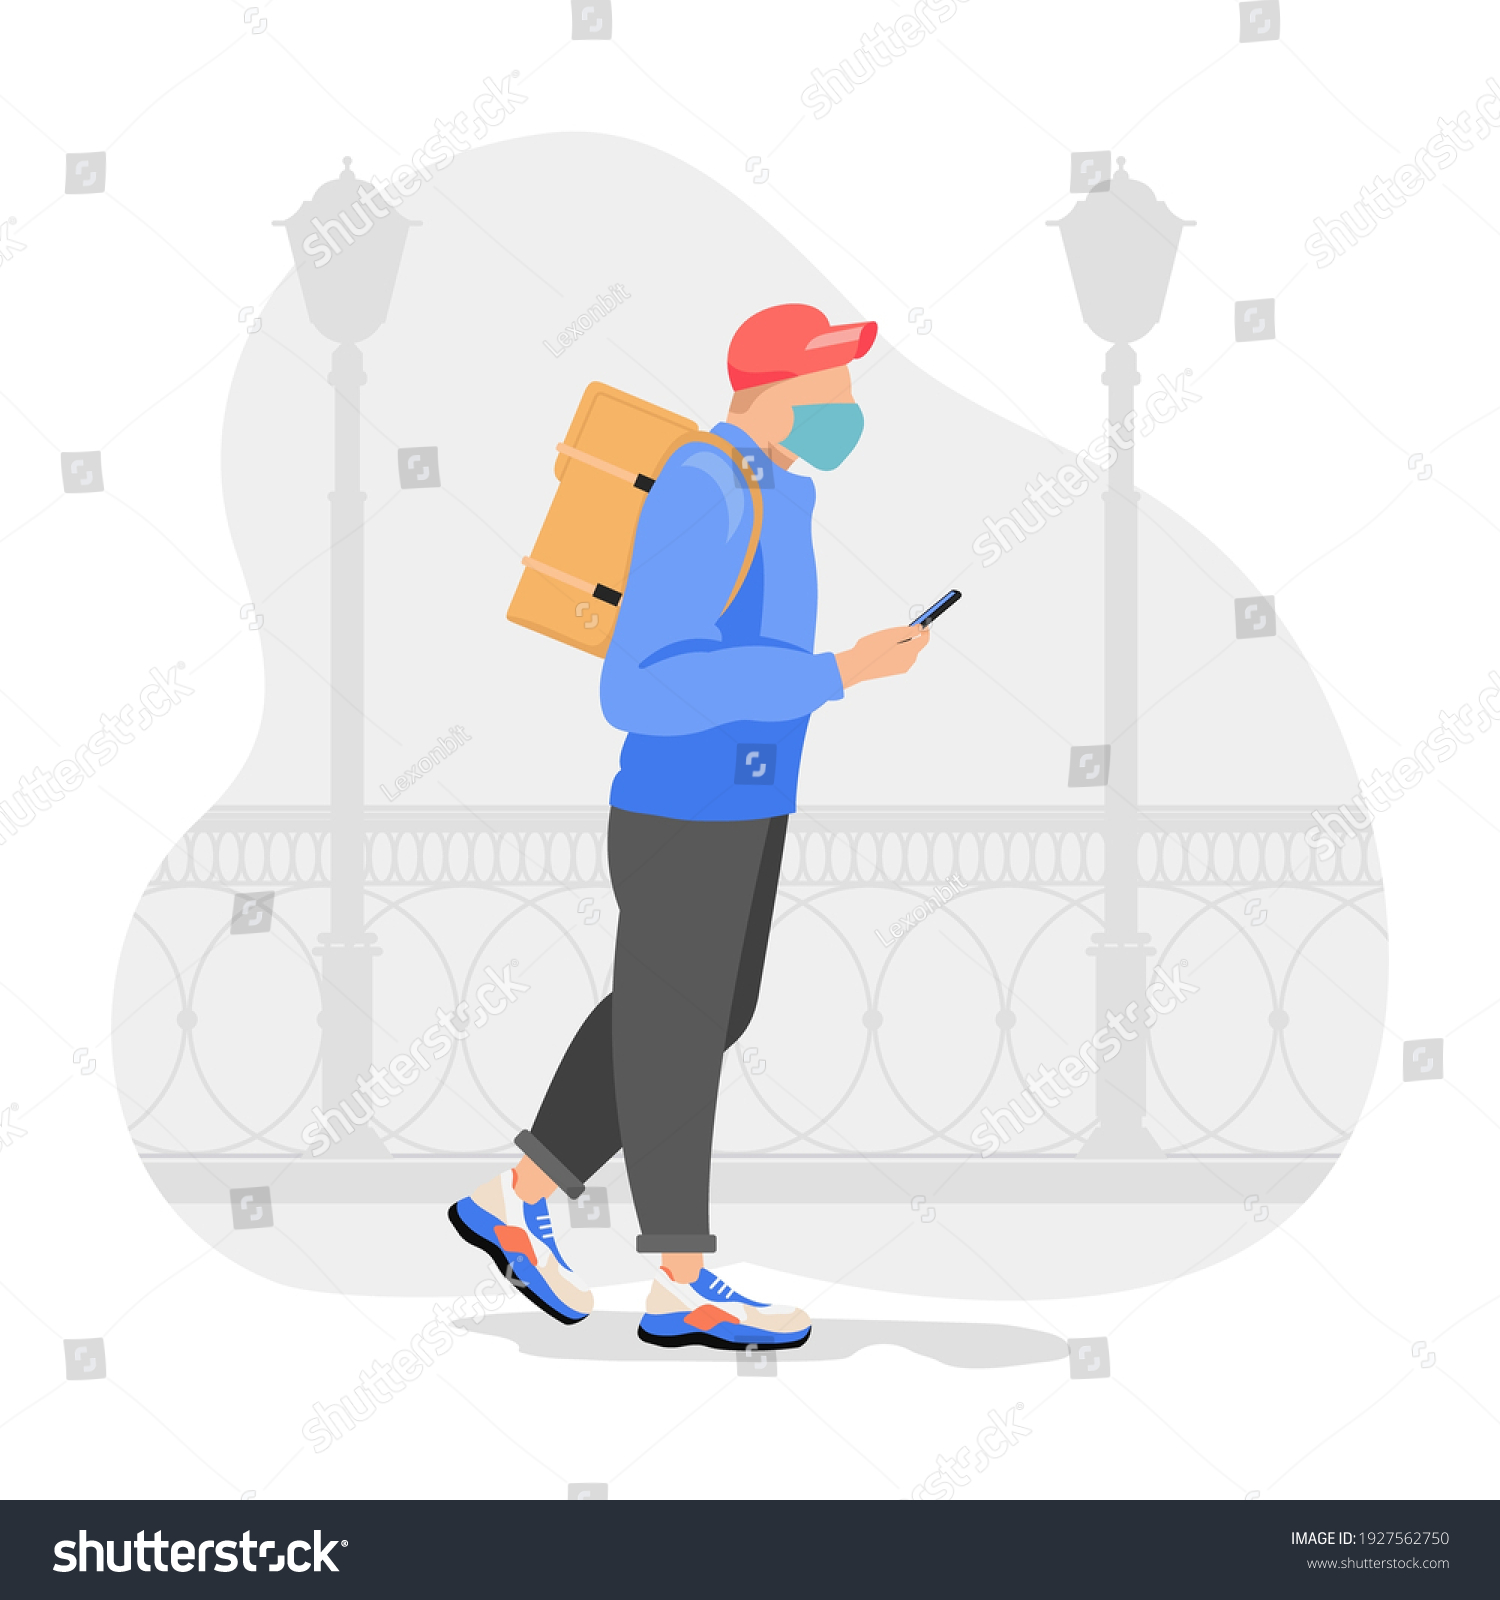 Food delivery man with orange backpack behind back is on his way to deliver food. Courier delivering food. Vector illustration. #1927562750